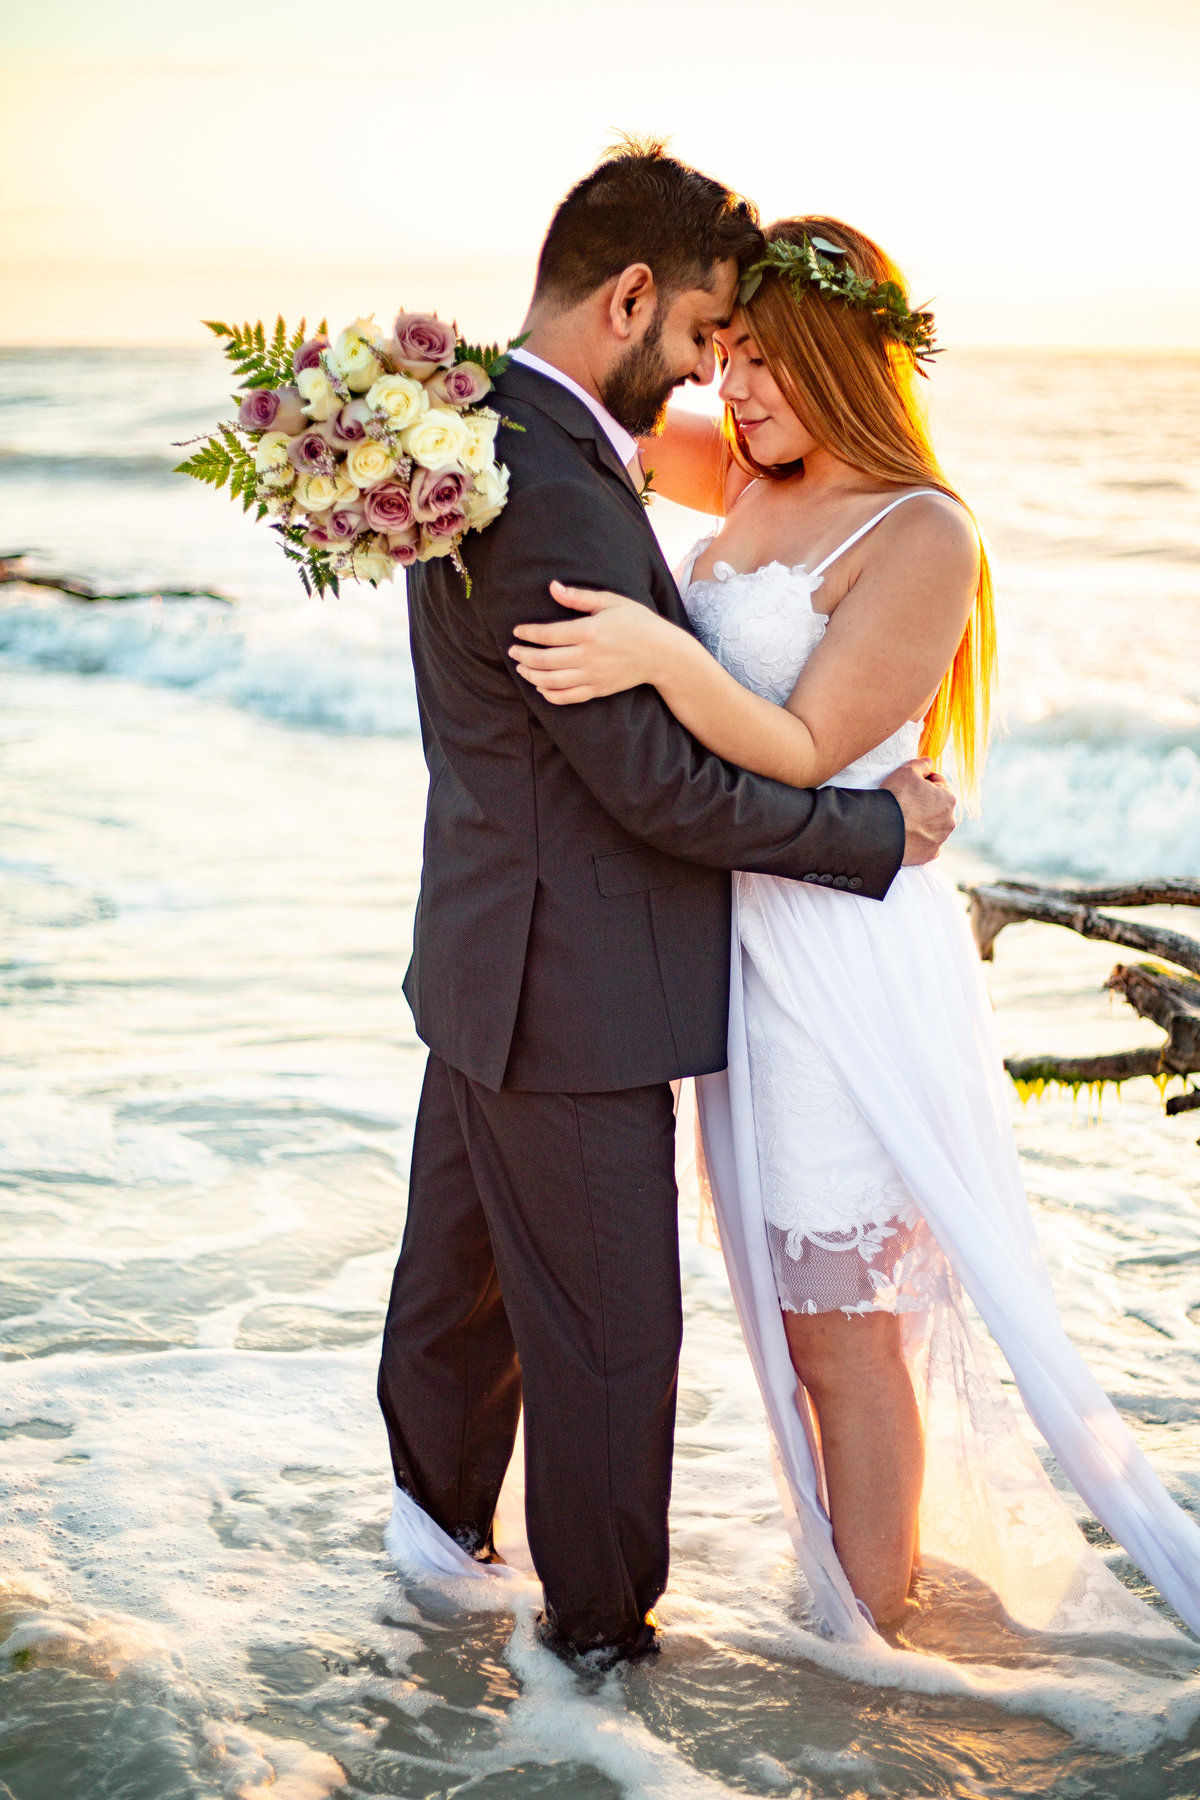 Bride and groom in ocean at the beach in Clearwater, Florida as they share an intimate moment at sunset on their wedding day with her wedding gown flowing in the ocean and she holds her cream, green, and purple bouquet around her groom's back